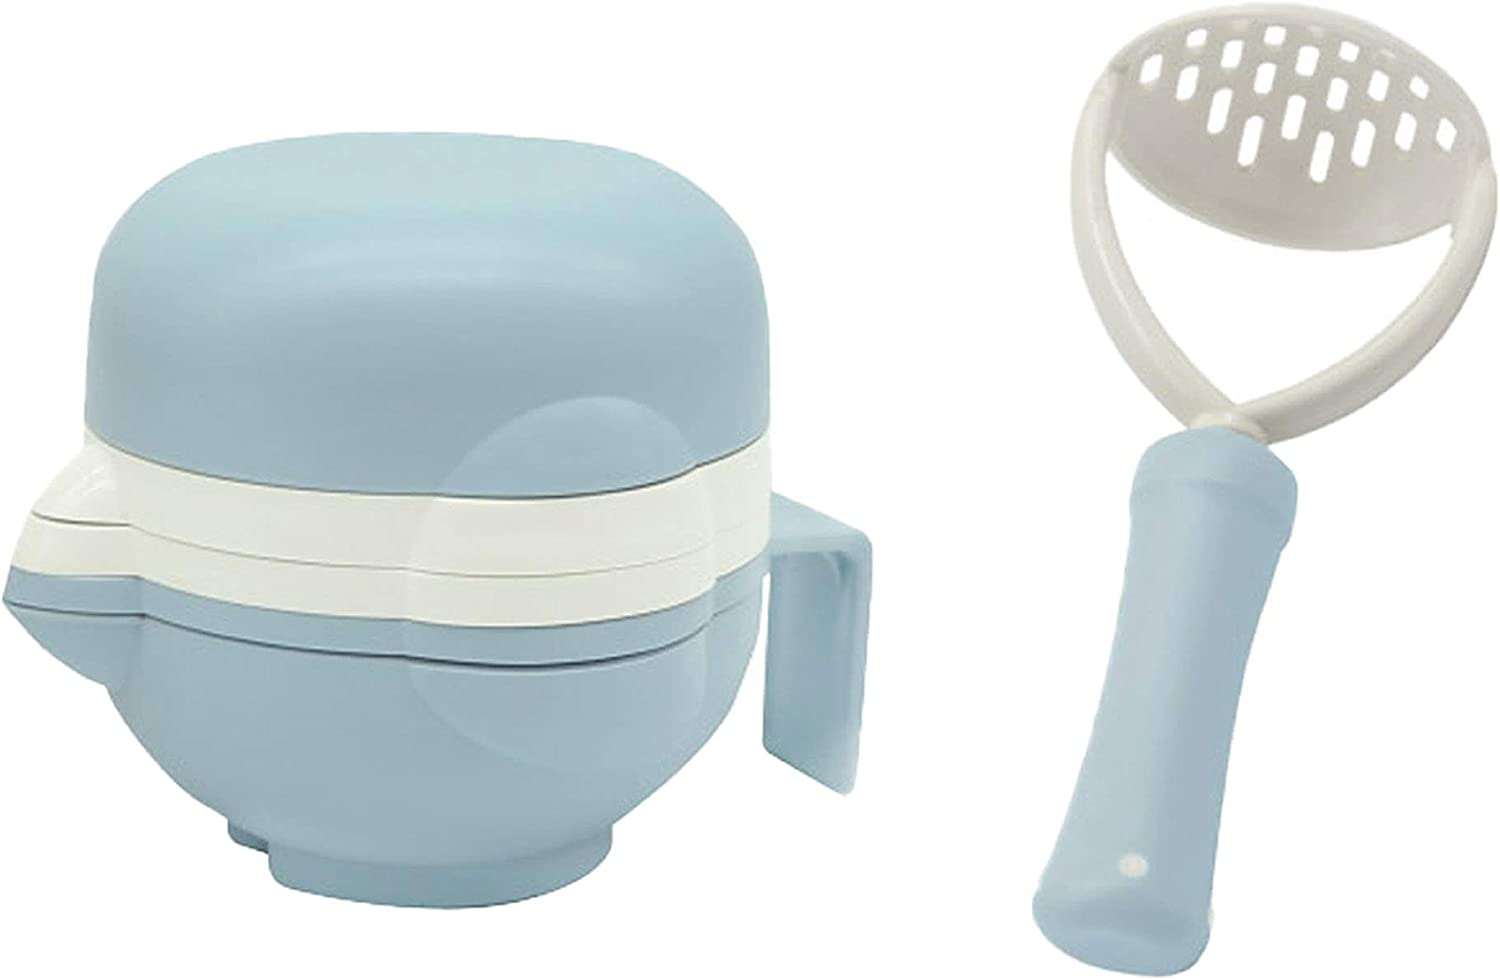 LITTOES BABY SOLID FOOD PREP SET grinder mashing handle serving bowl stainless steel mesh strainer juicer blue montessori